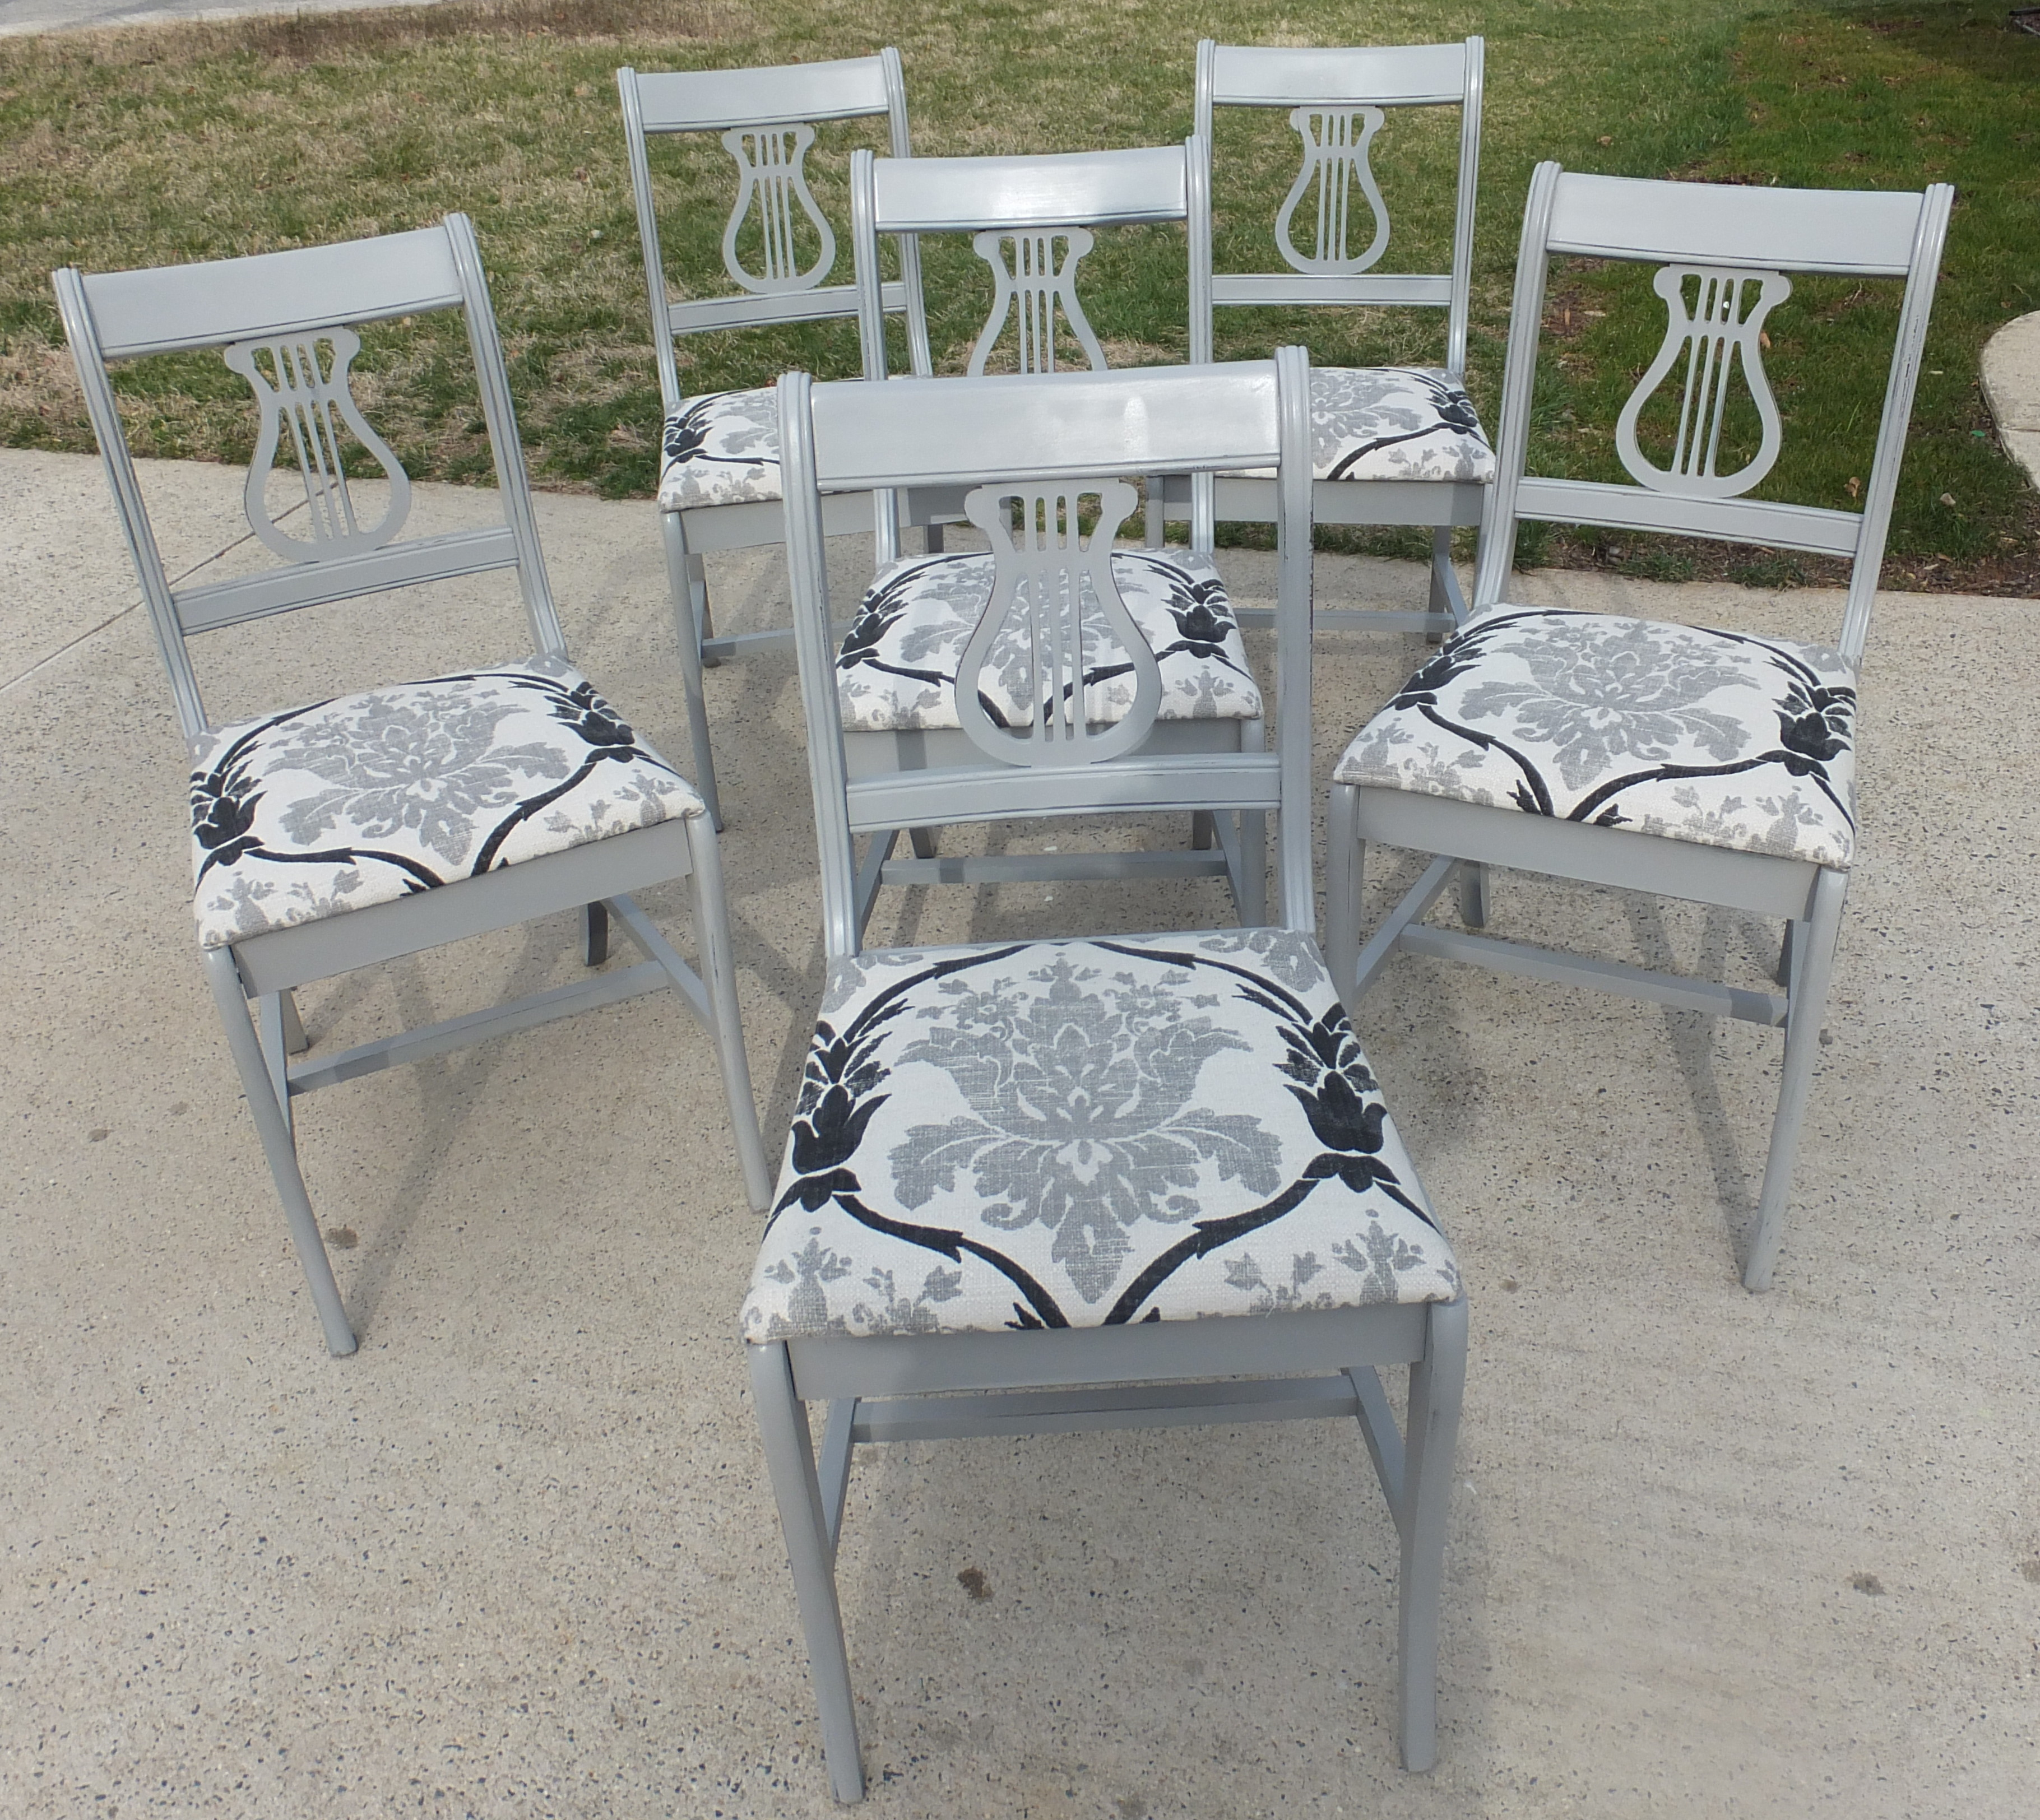 This item has been sold 6 Duncan Phyfe chairs 07